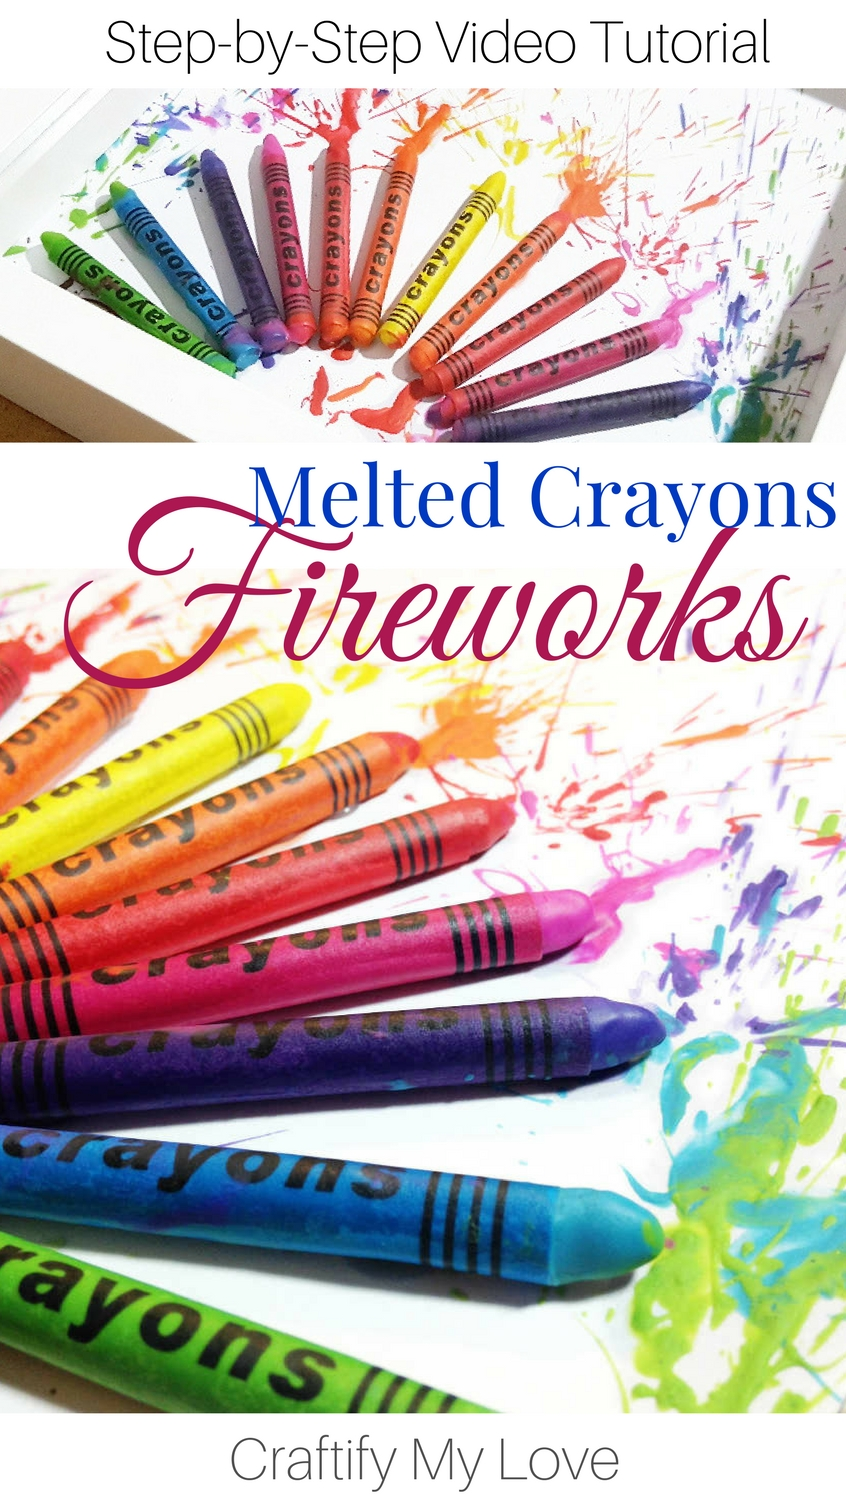 Learn how to make Melted Crayons Fireworks in IKEAS shadow frame RIBBA. Click for easy step-by-step instructions including video tutorial! | #meltedcrayons #kidscraft #summeractivities #shadowbox #fireworks #diy #homedecor #wallart